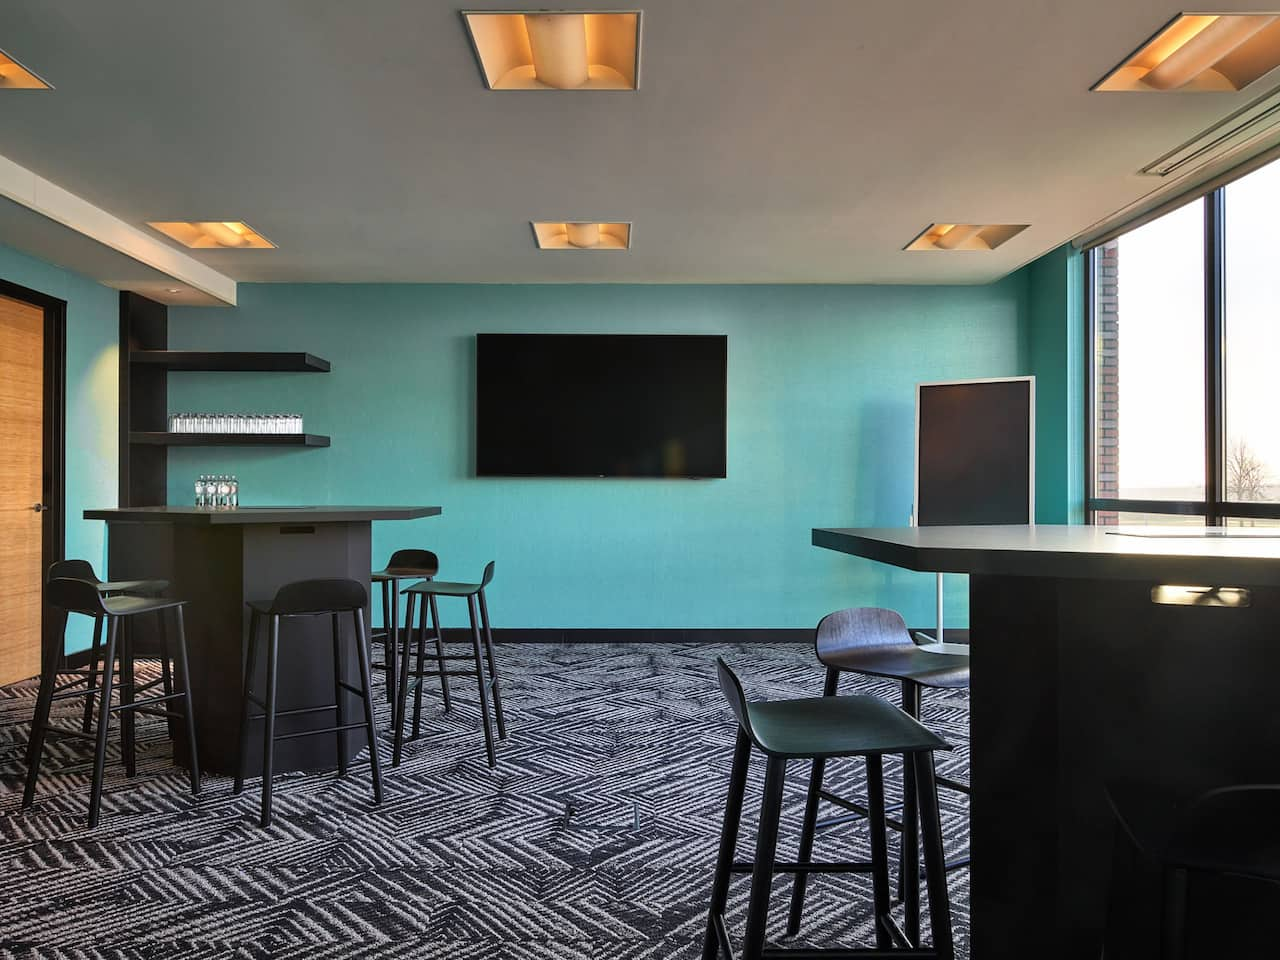 Hyatt Place | Meeting Room